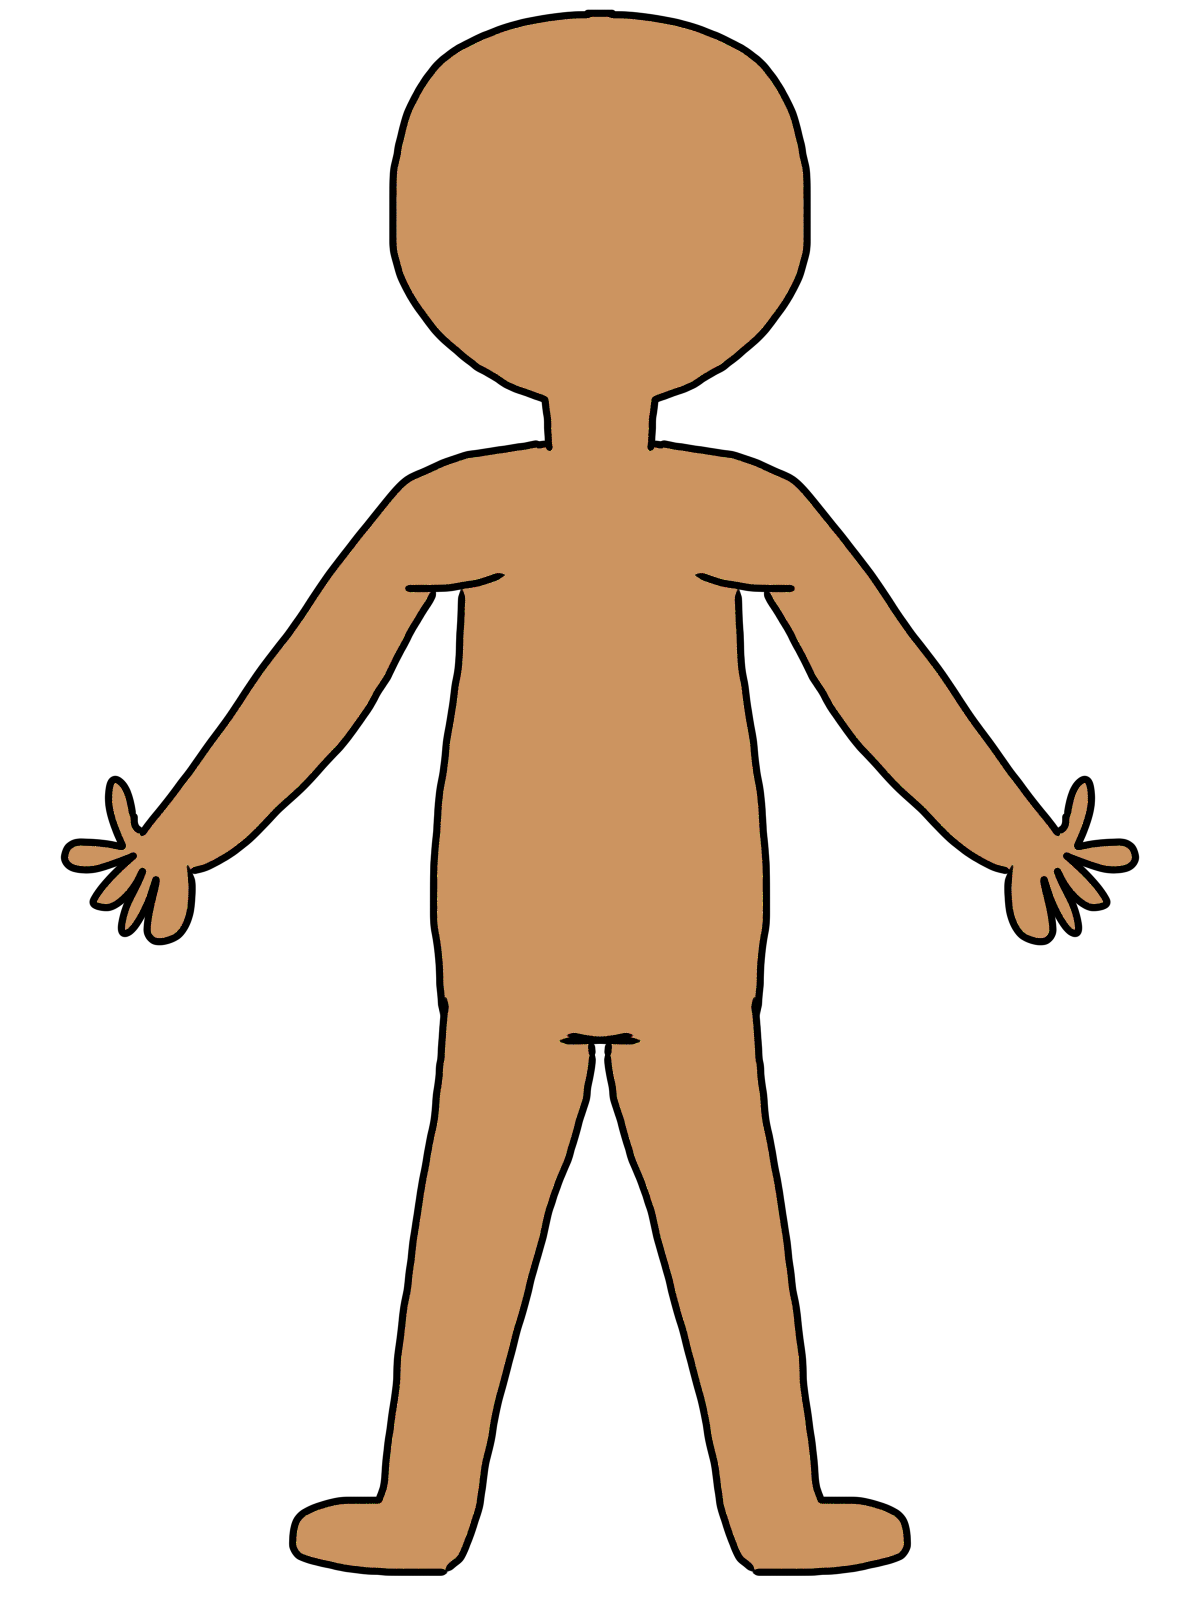 clipart human figure - photo #19